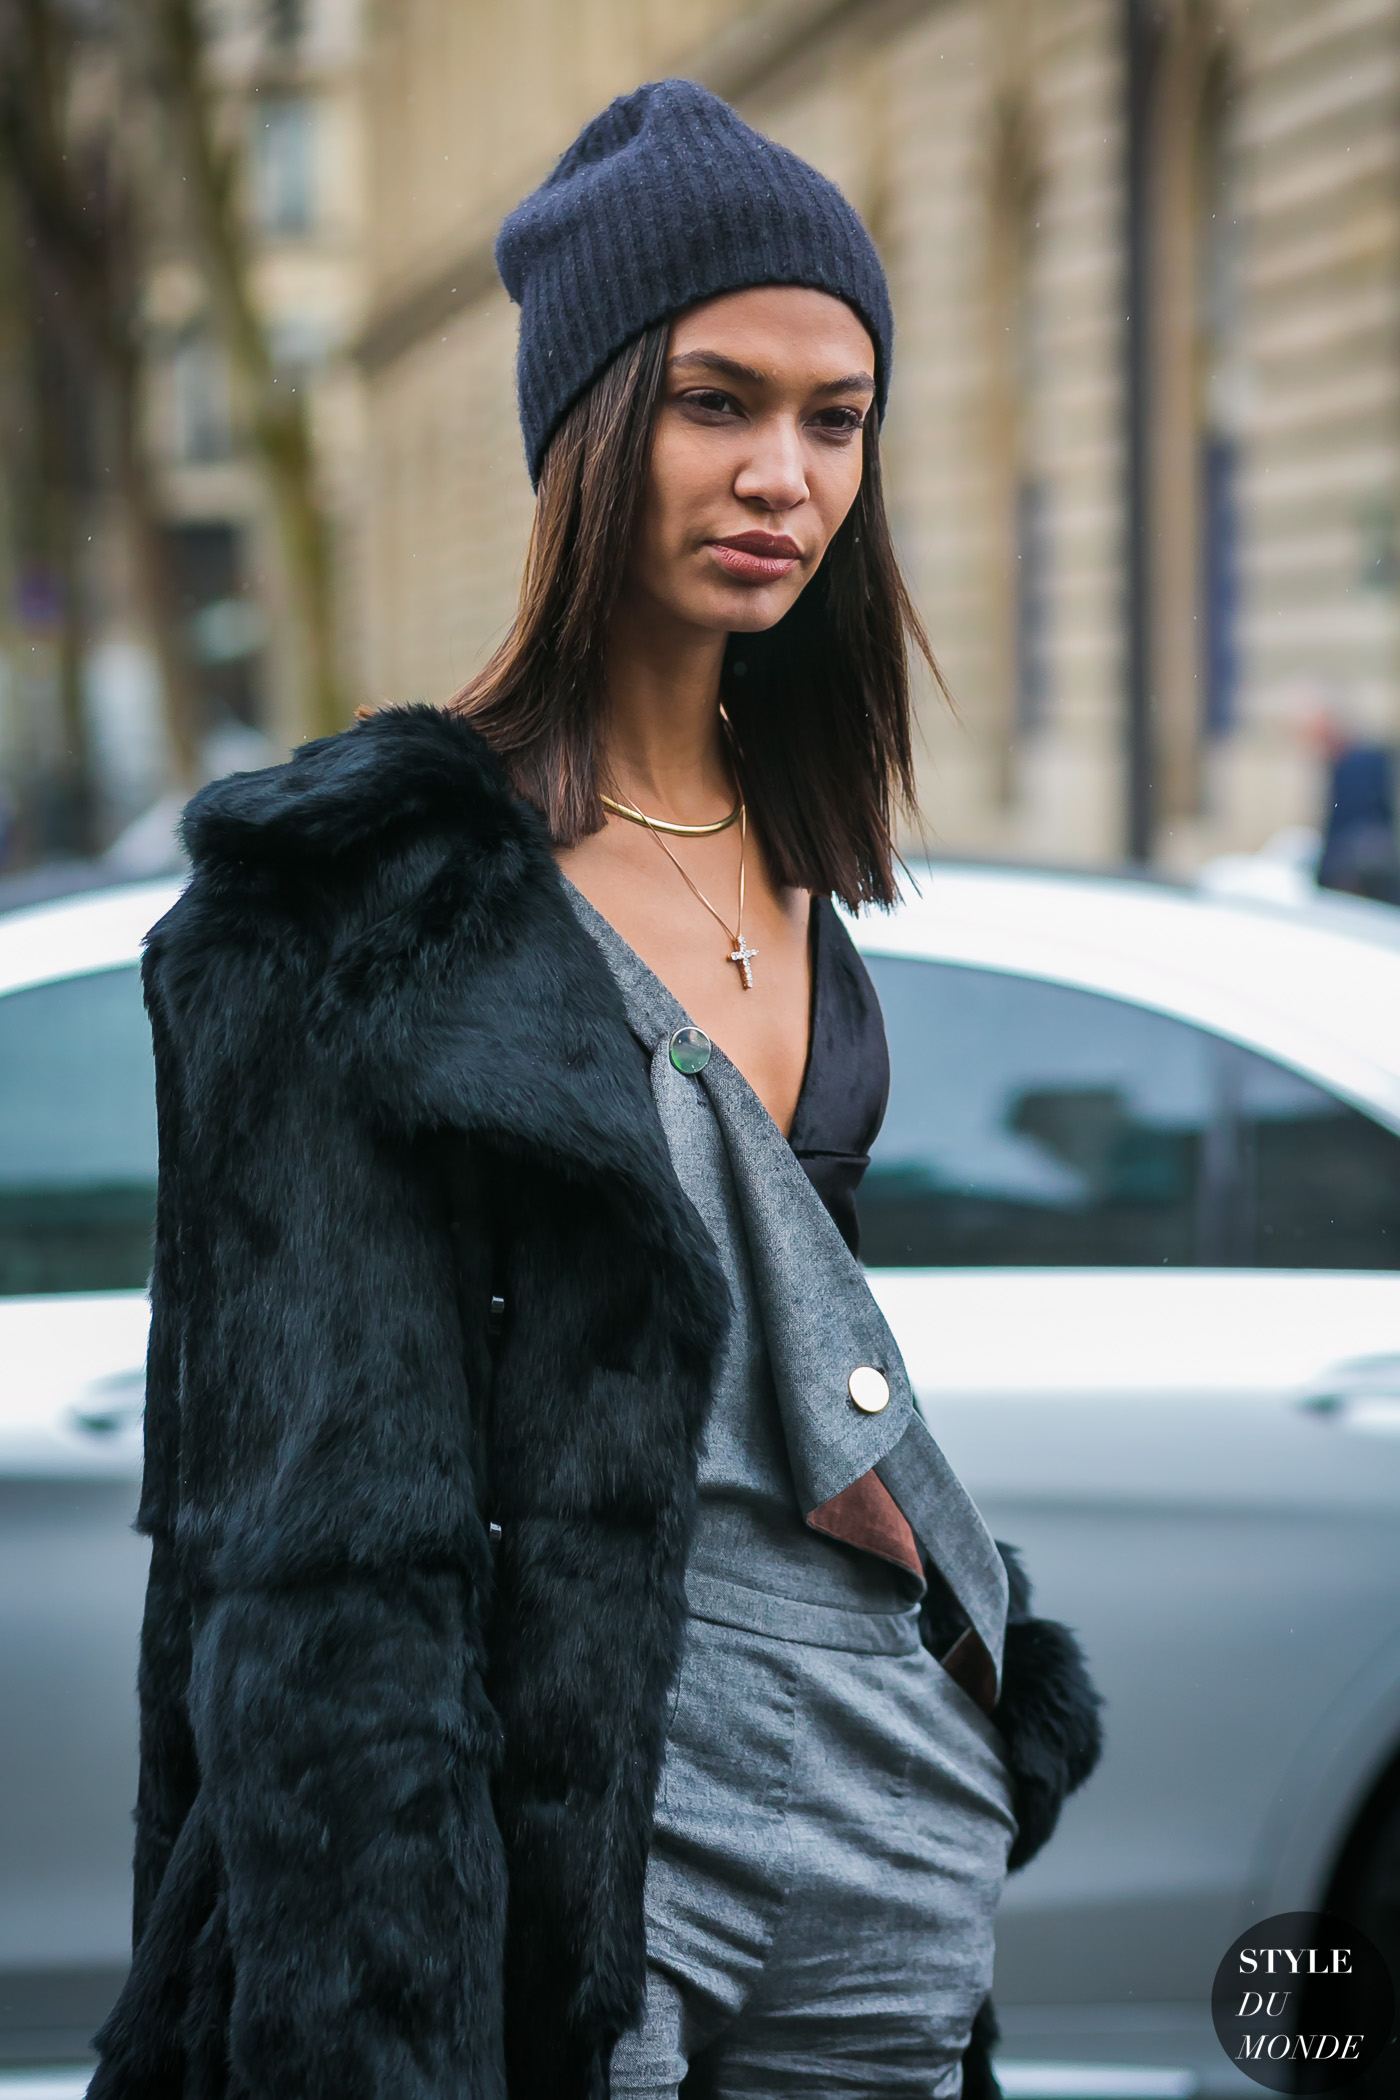 Joan Smalls by STYLEDUMONDE Street Style Fashion Photography